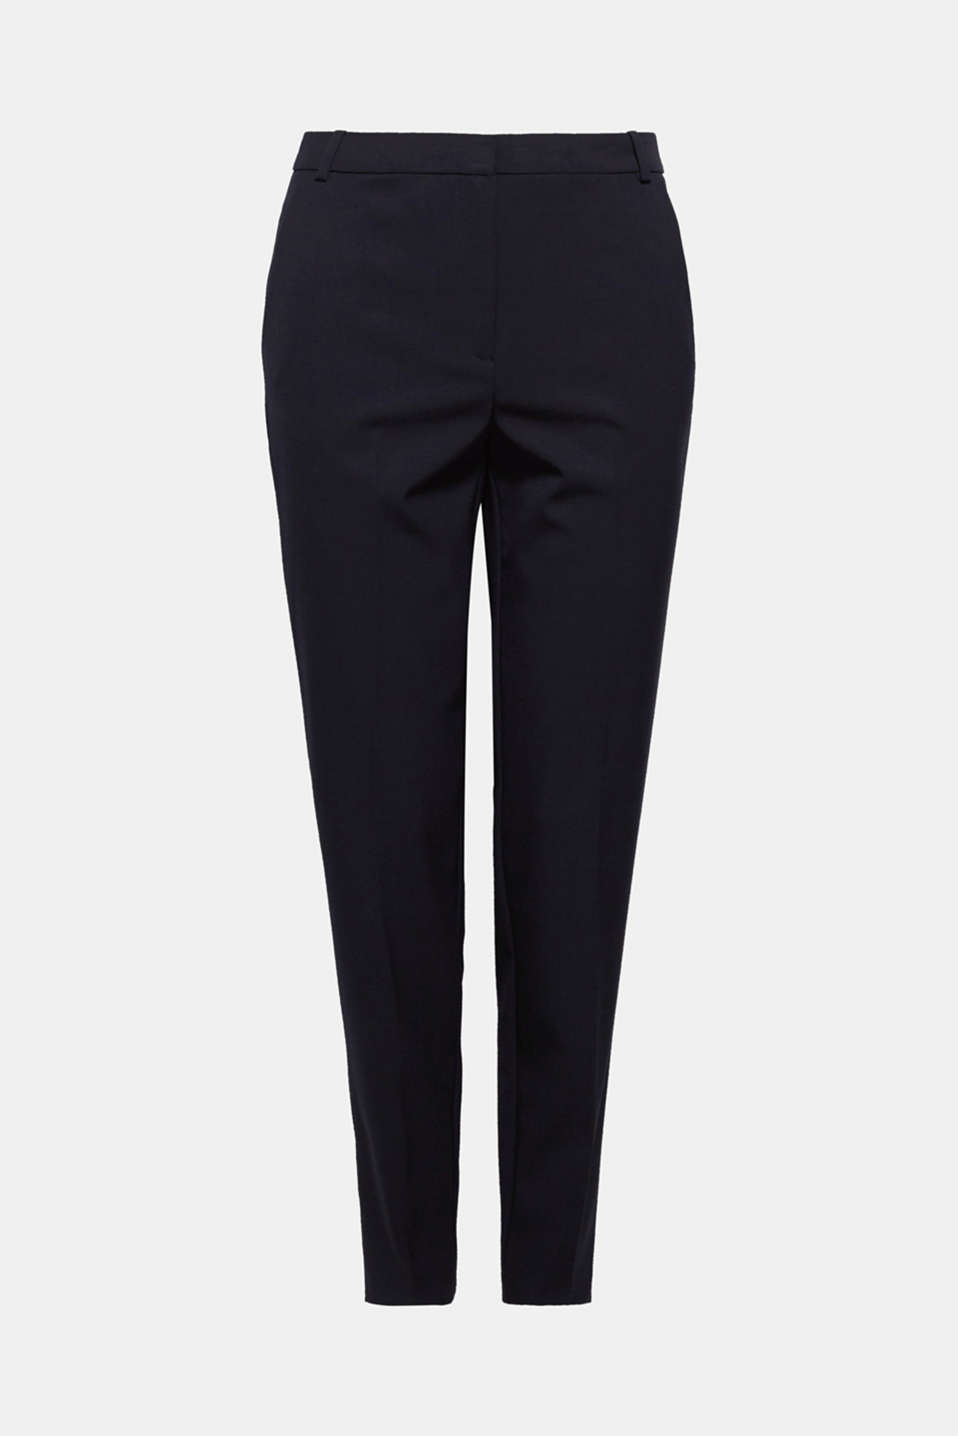 These softly draped, lightweight trousers in a clean look can be worn on their own or paired with the matching blazer!